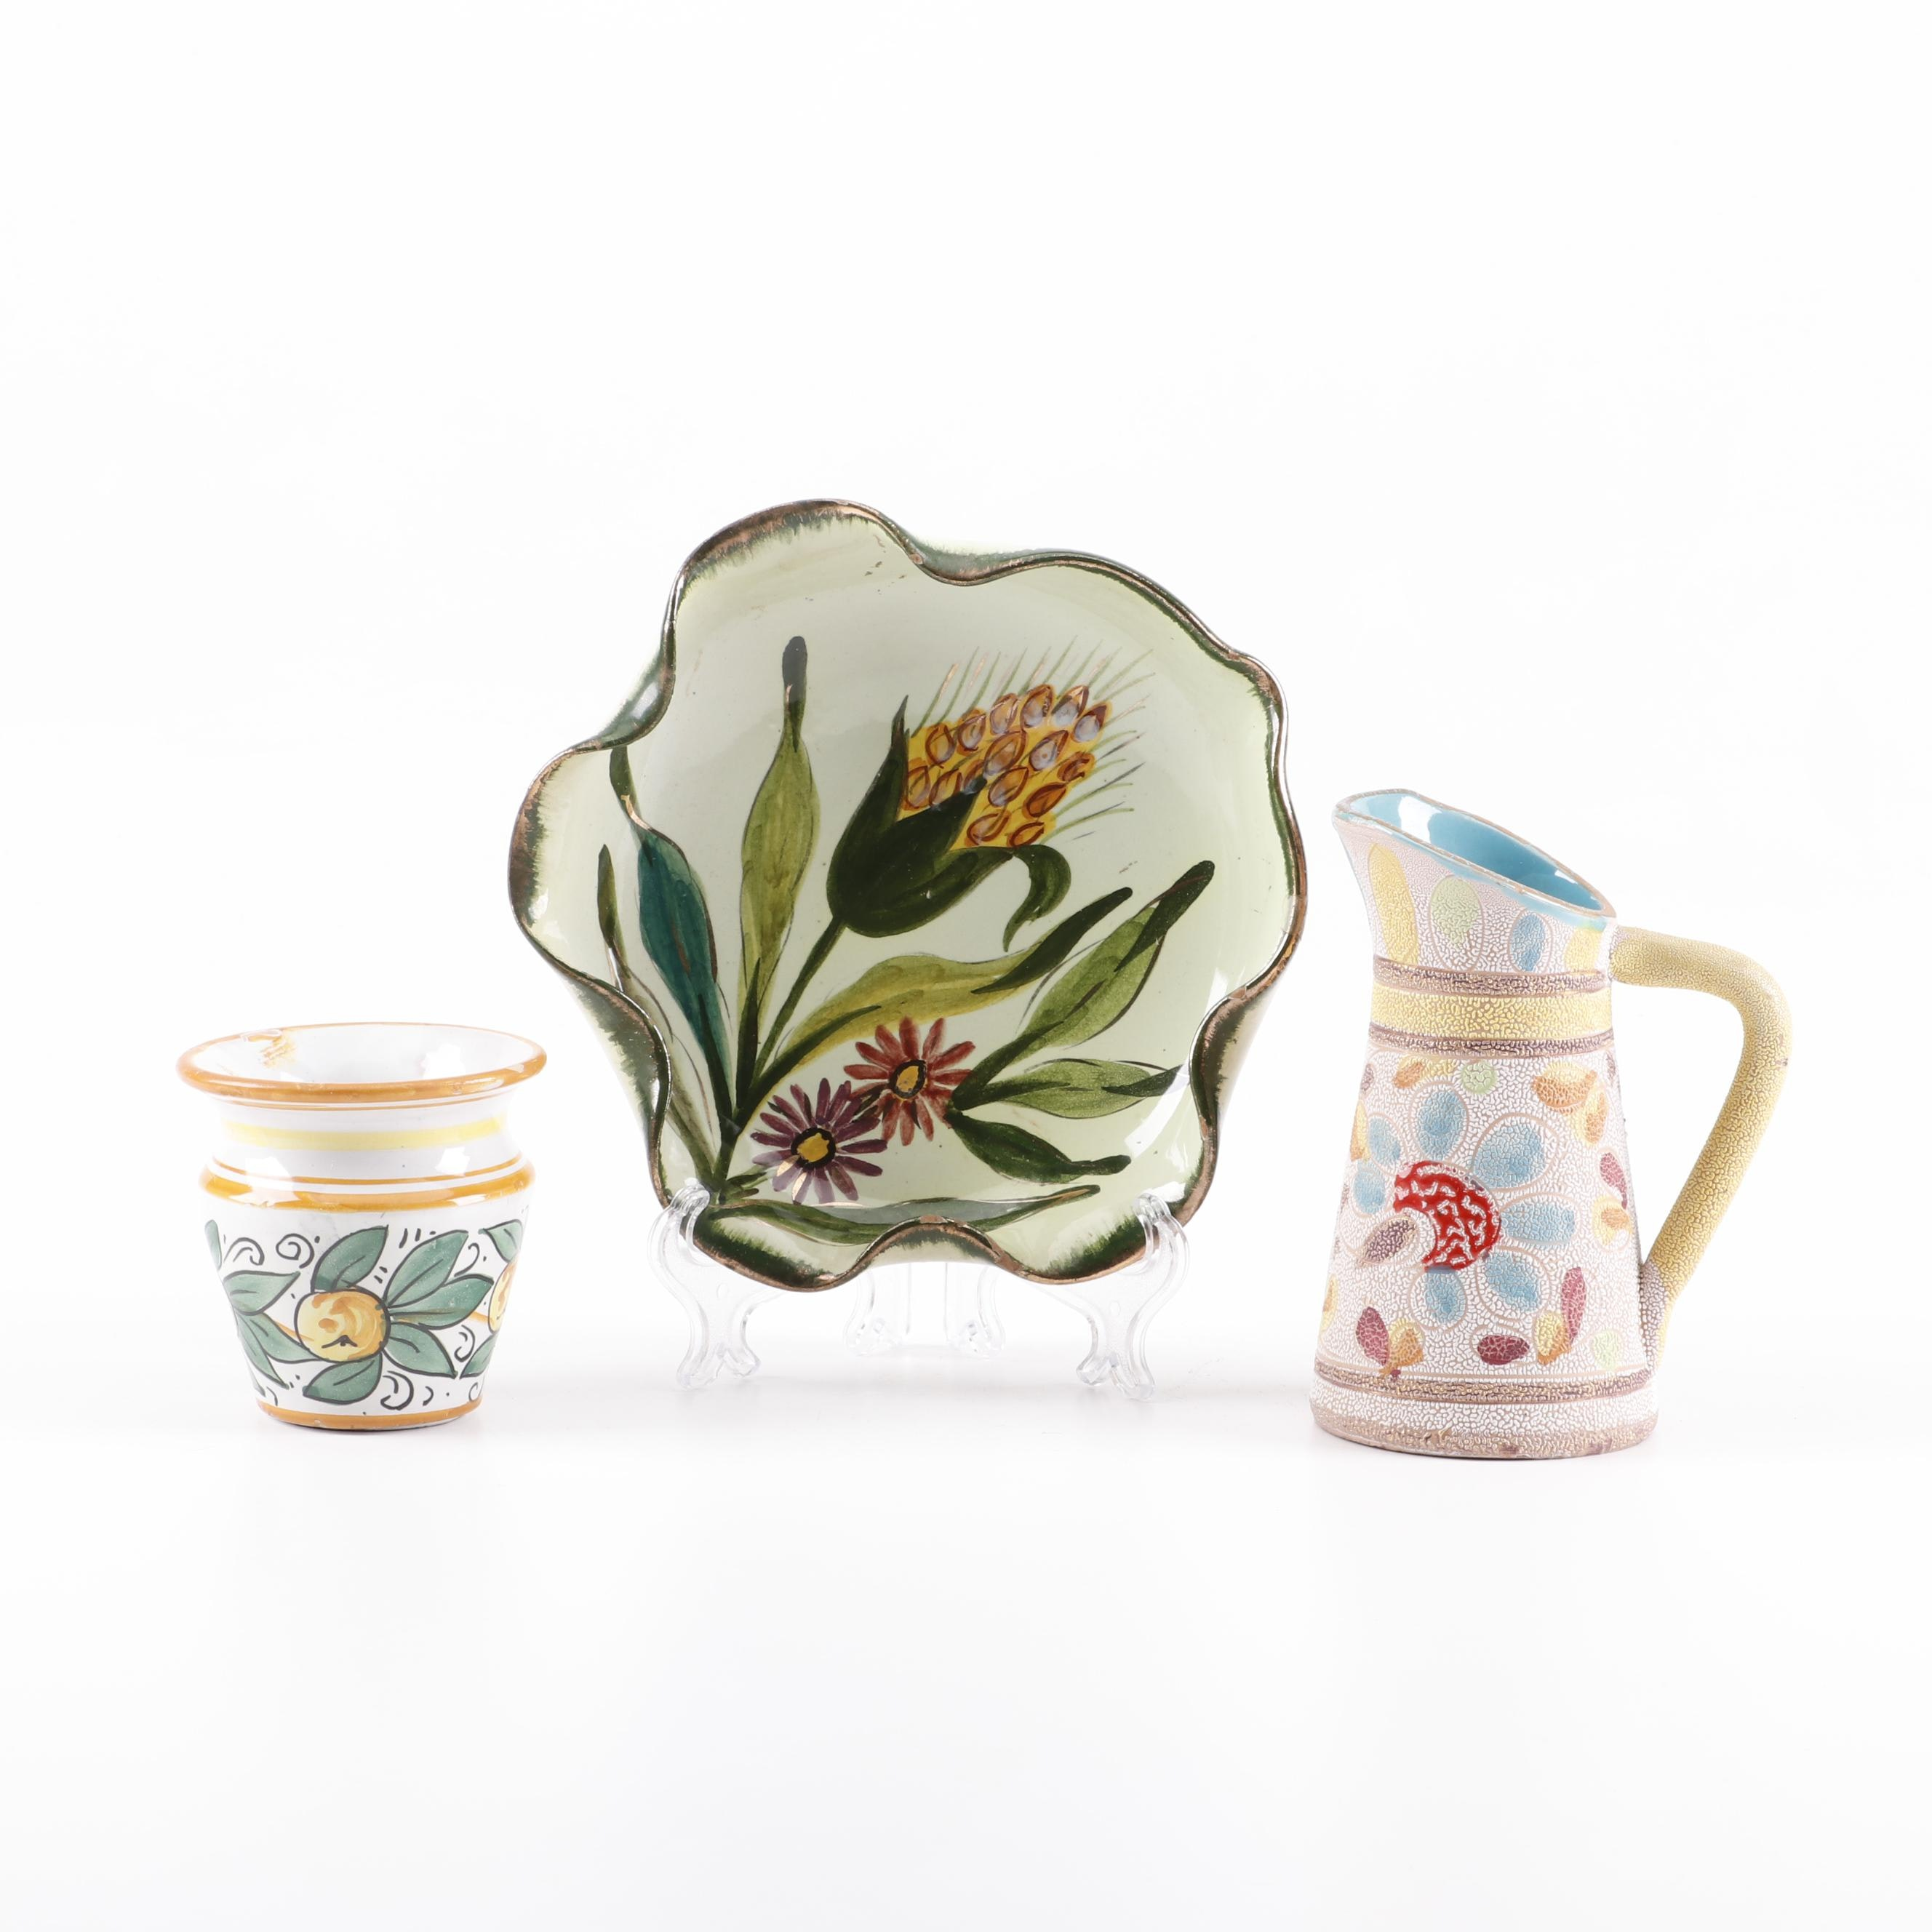 Italian Faïence Hand-Painted Tableware